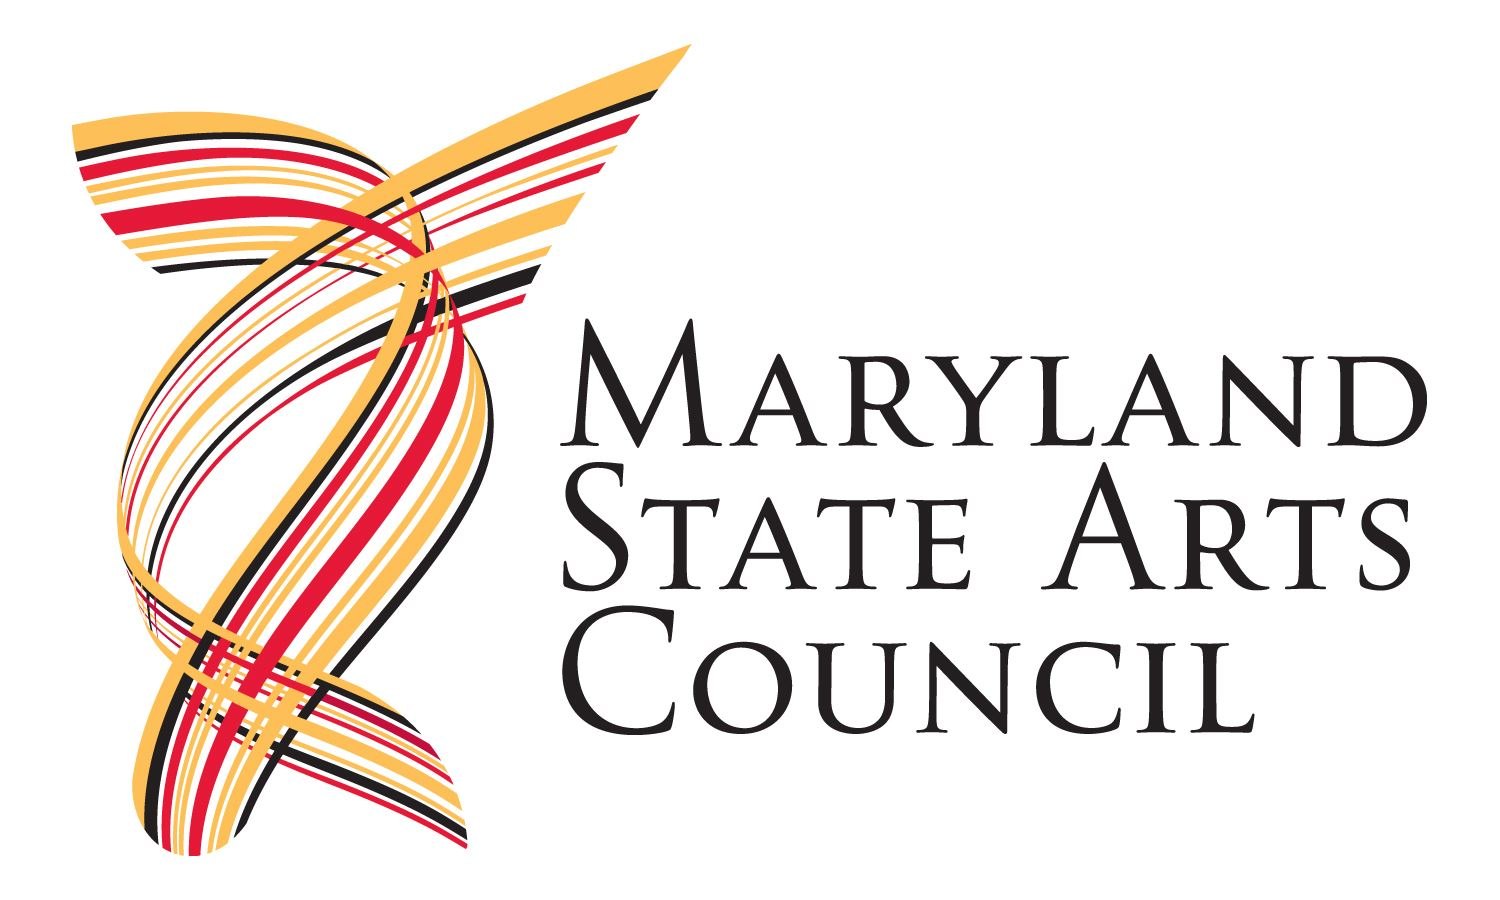 Logo for Maryland State Arts Council written in black with red, yellow, and black lines to the left